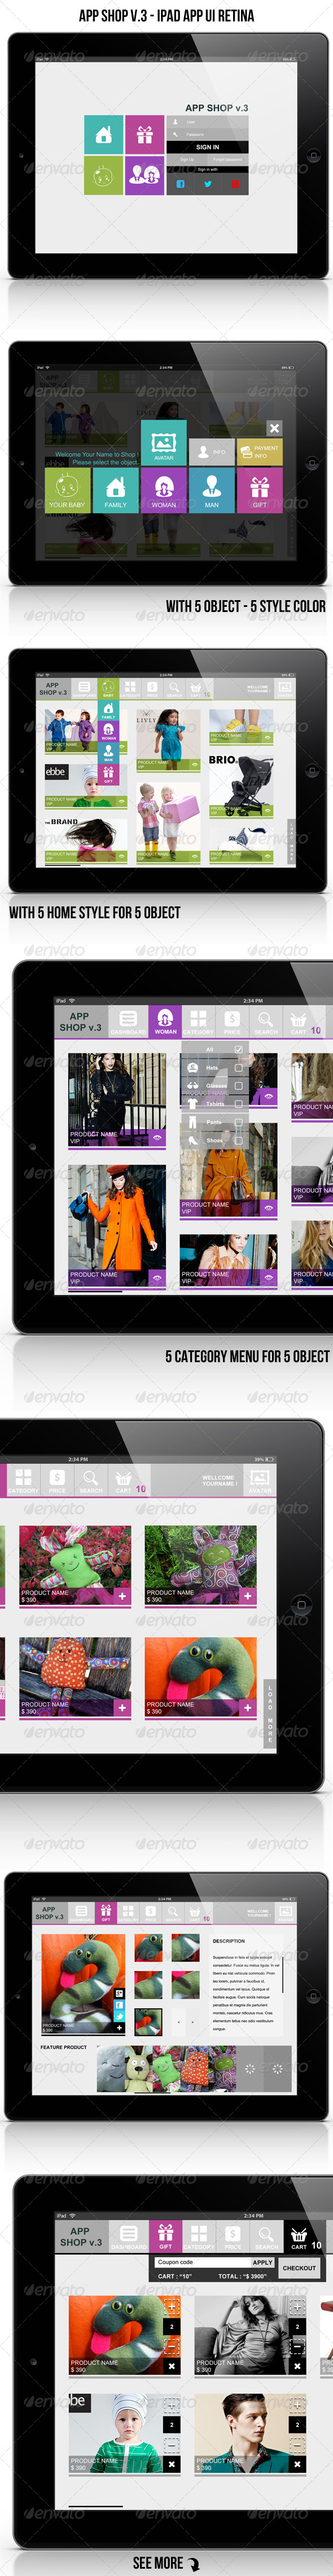 GraphicRiver App Shop v.3 Ipad App UI Retina 4361630